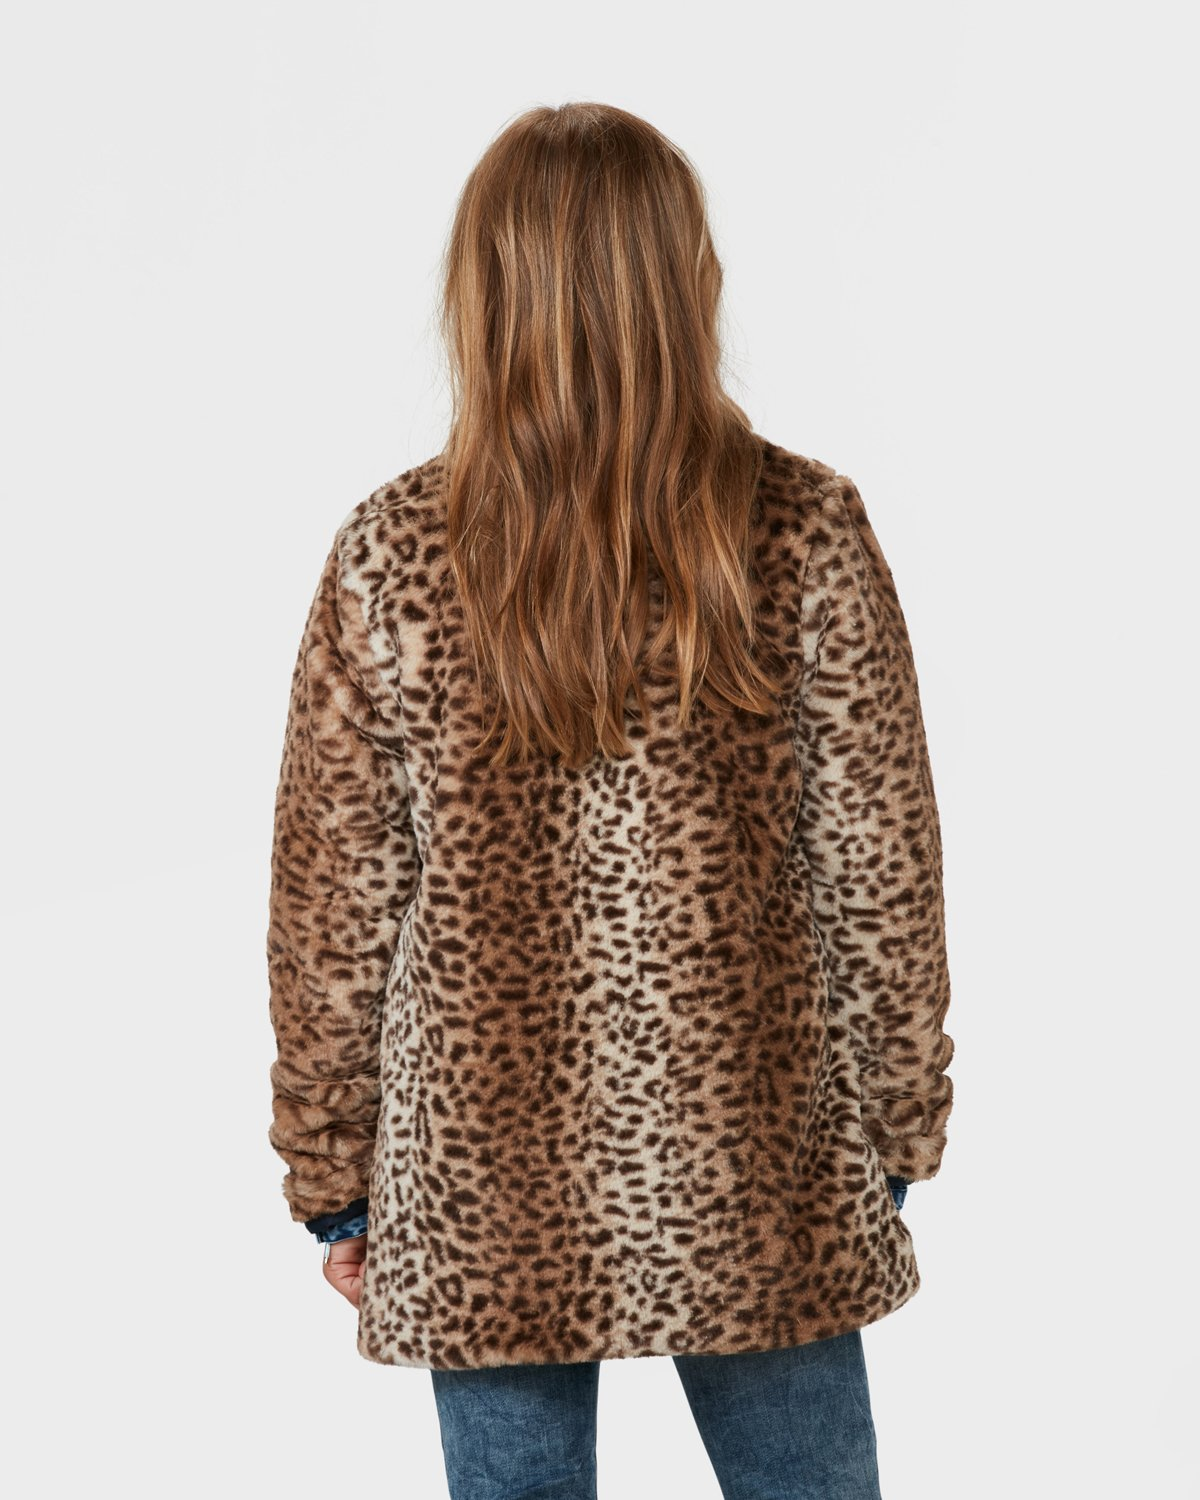 Shop Wilsons Leather for women's fur & Shearling trimmed jackets & coats and more. Get high quality women's fur & Shearling trimmed jackets & coats at exceptional values.